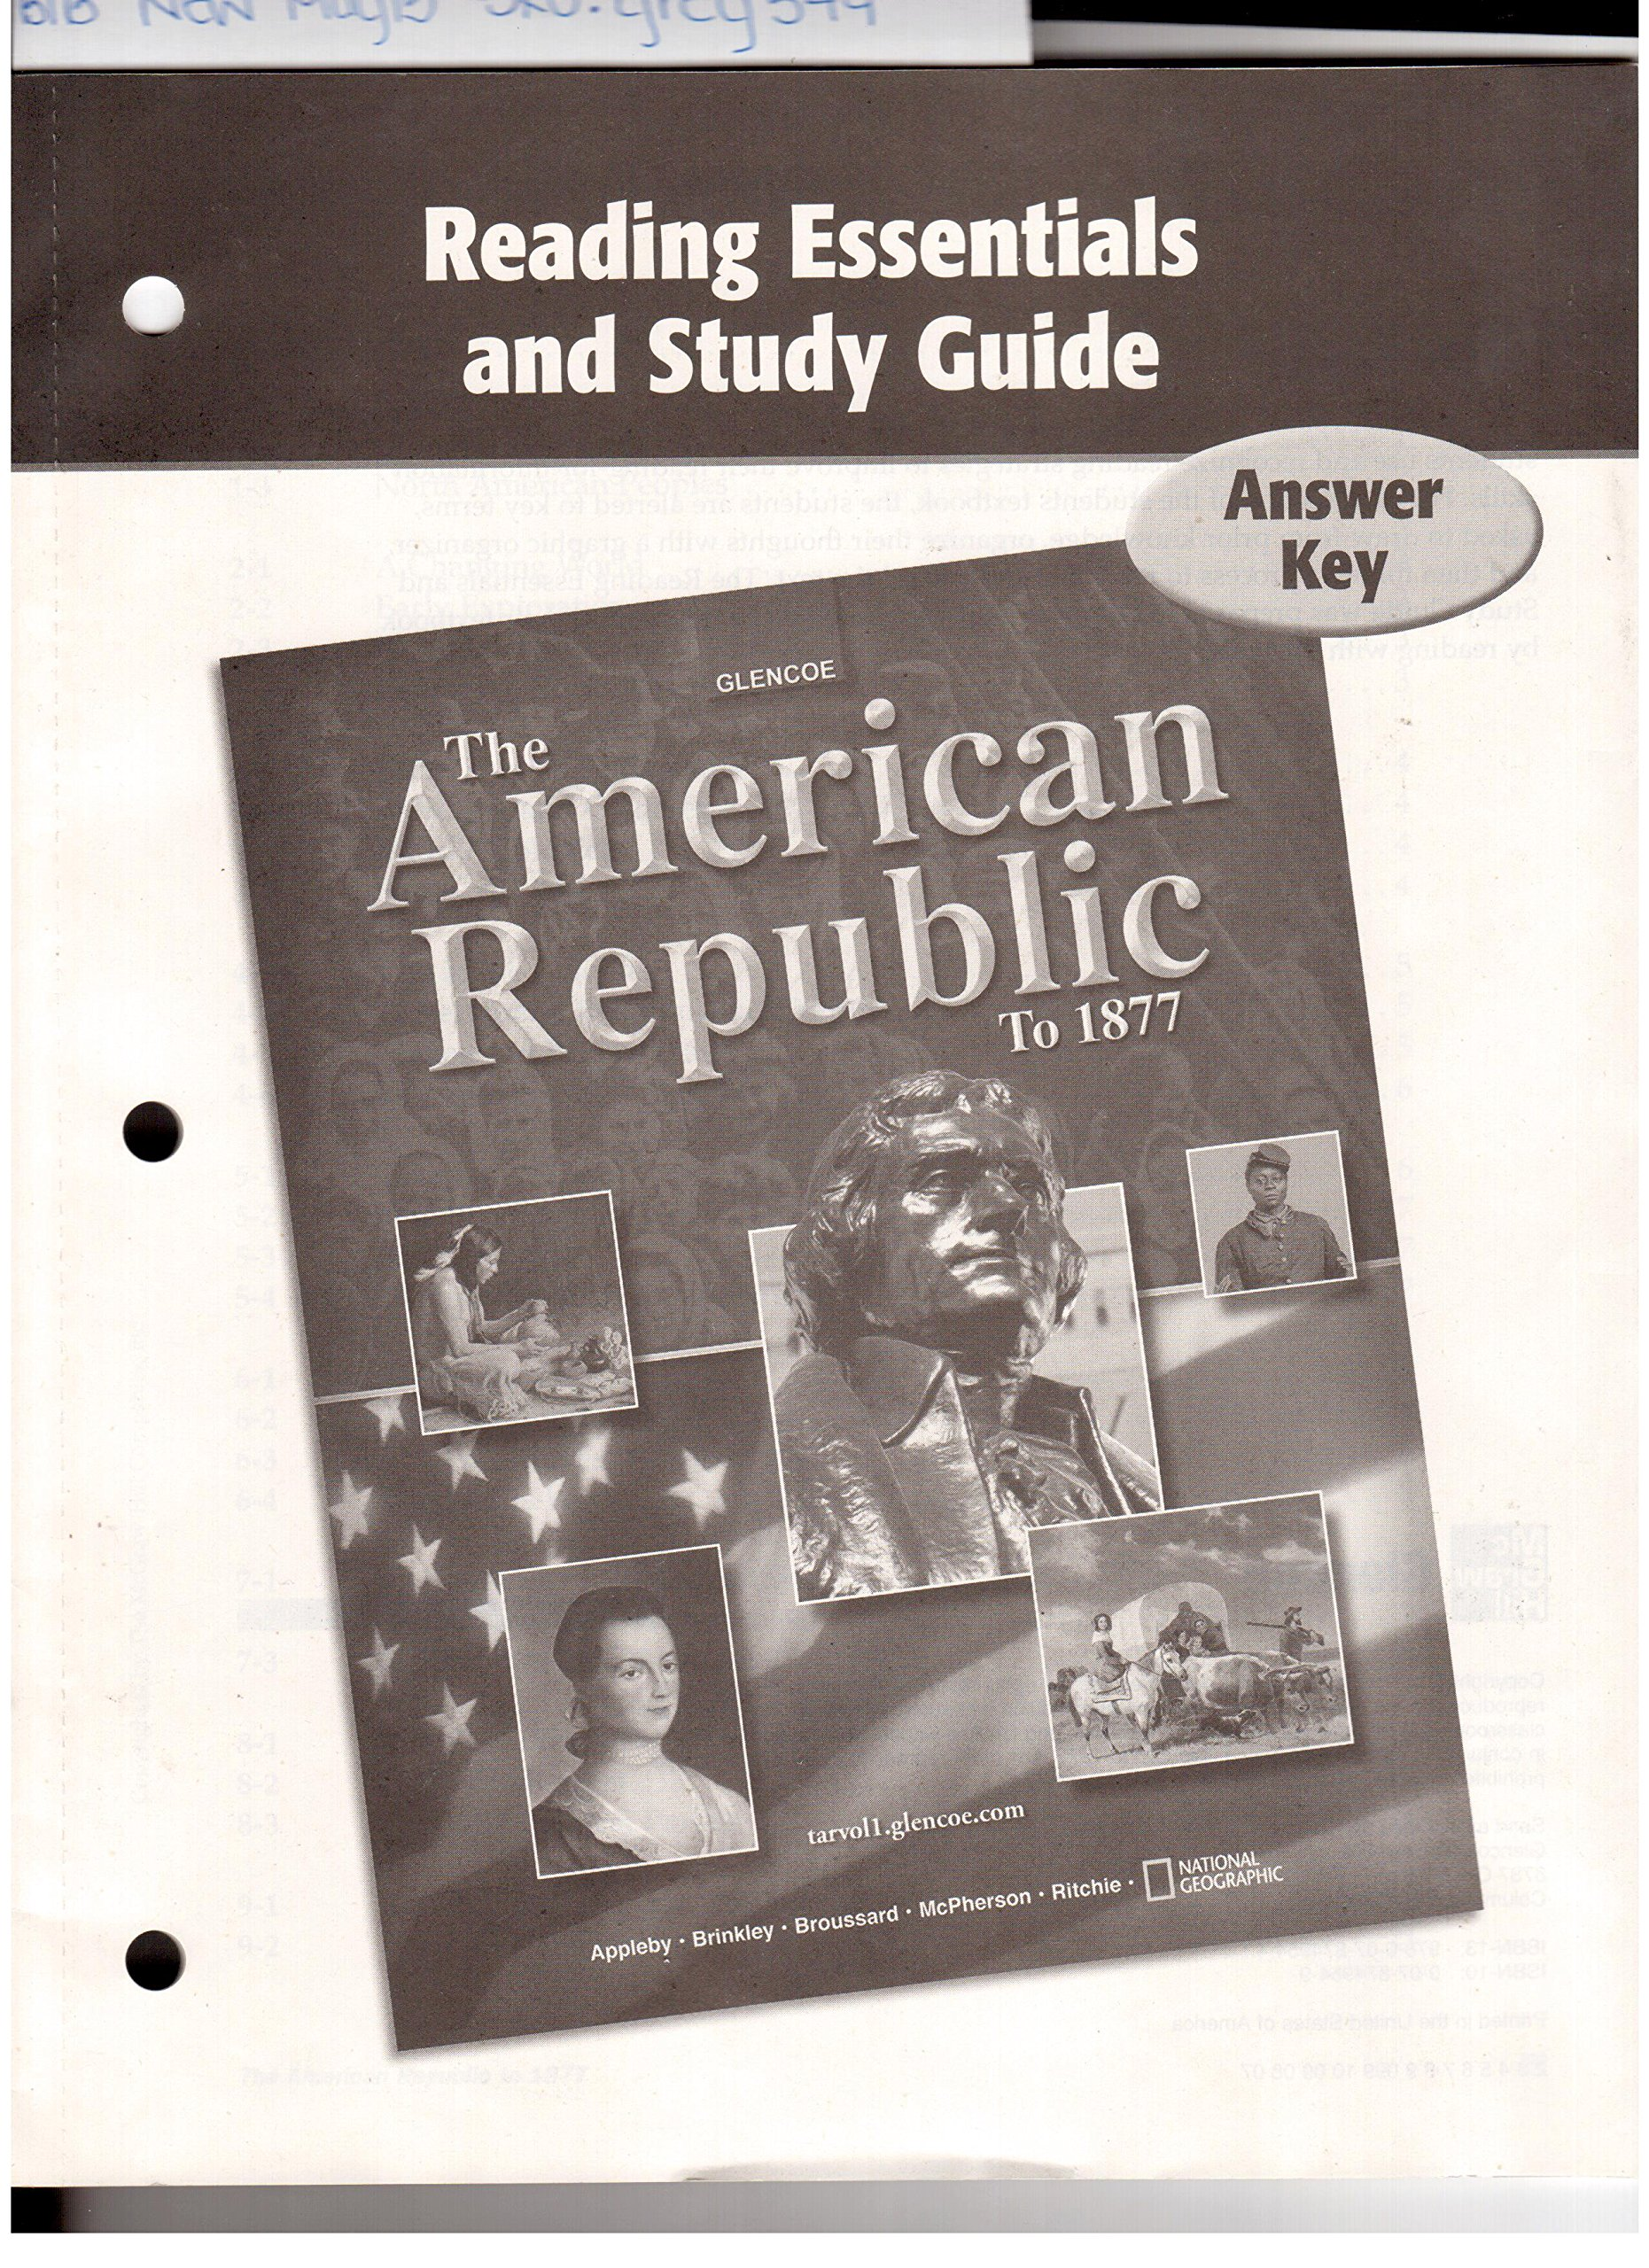 Uncategorized Glencoe Mcgraw-hill Worksheet Answers reading essentials and study guide answer key glencoe the american republic to 1877 appleby brinkley 9780078749544 amazon com boo